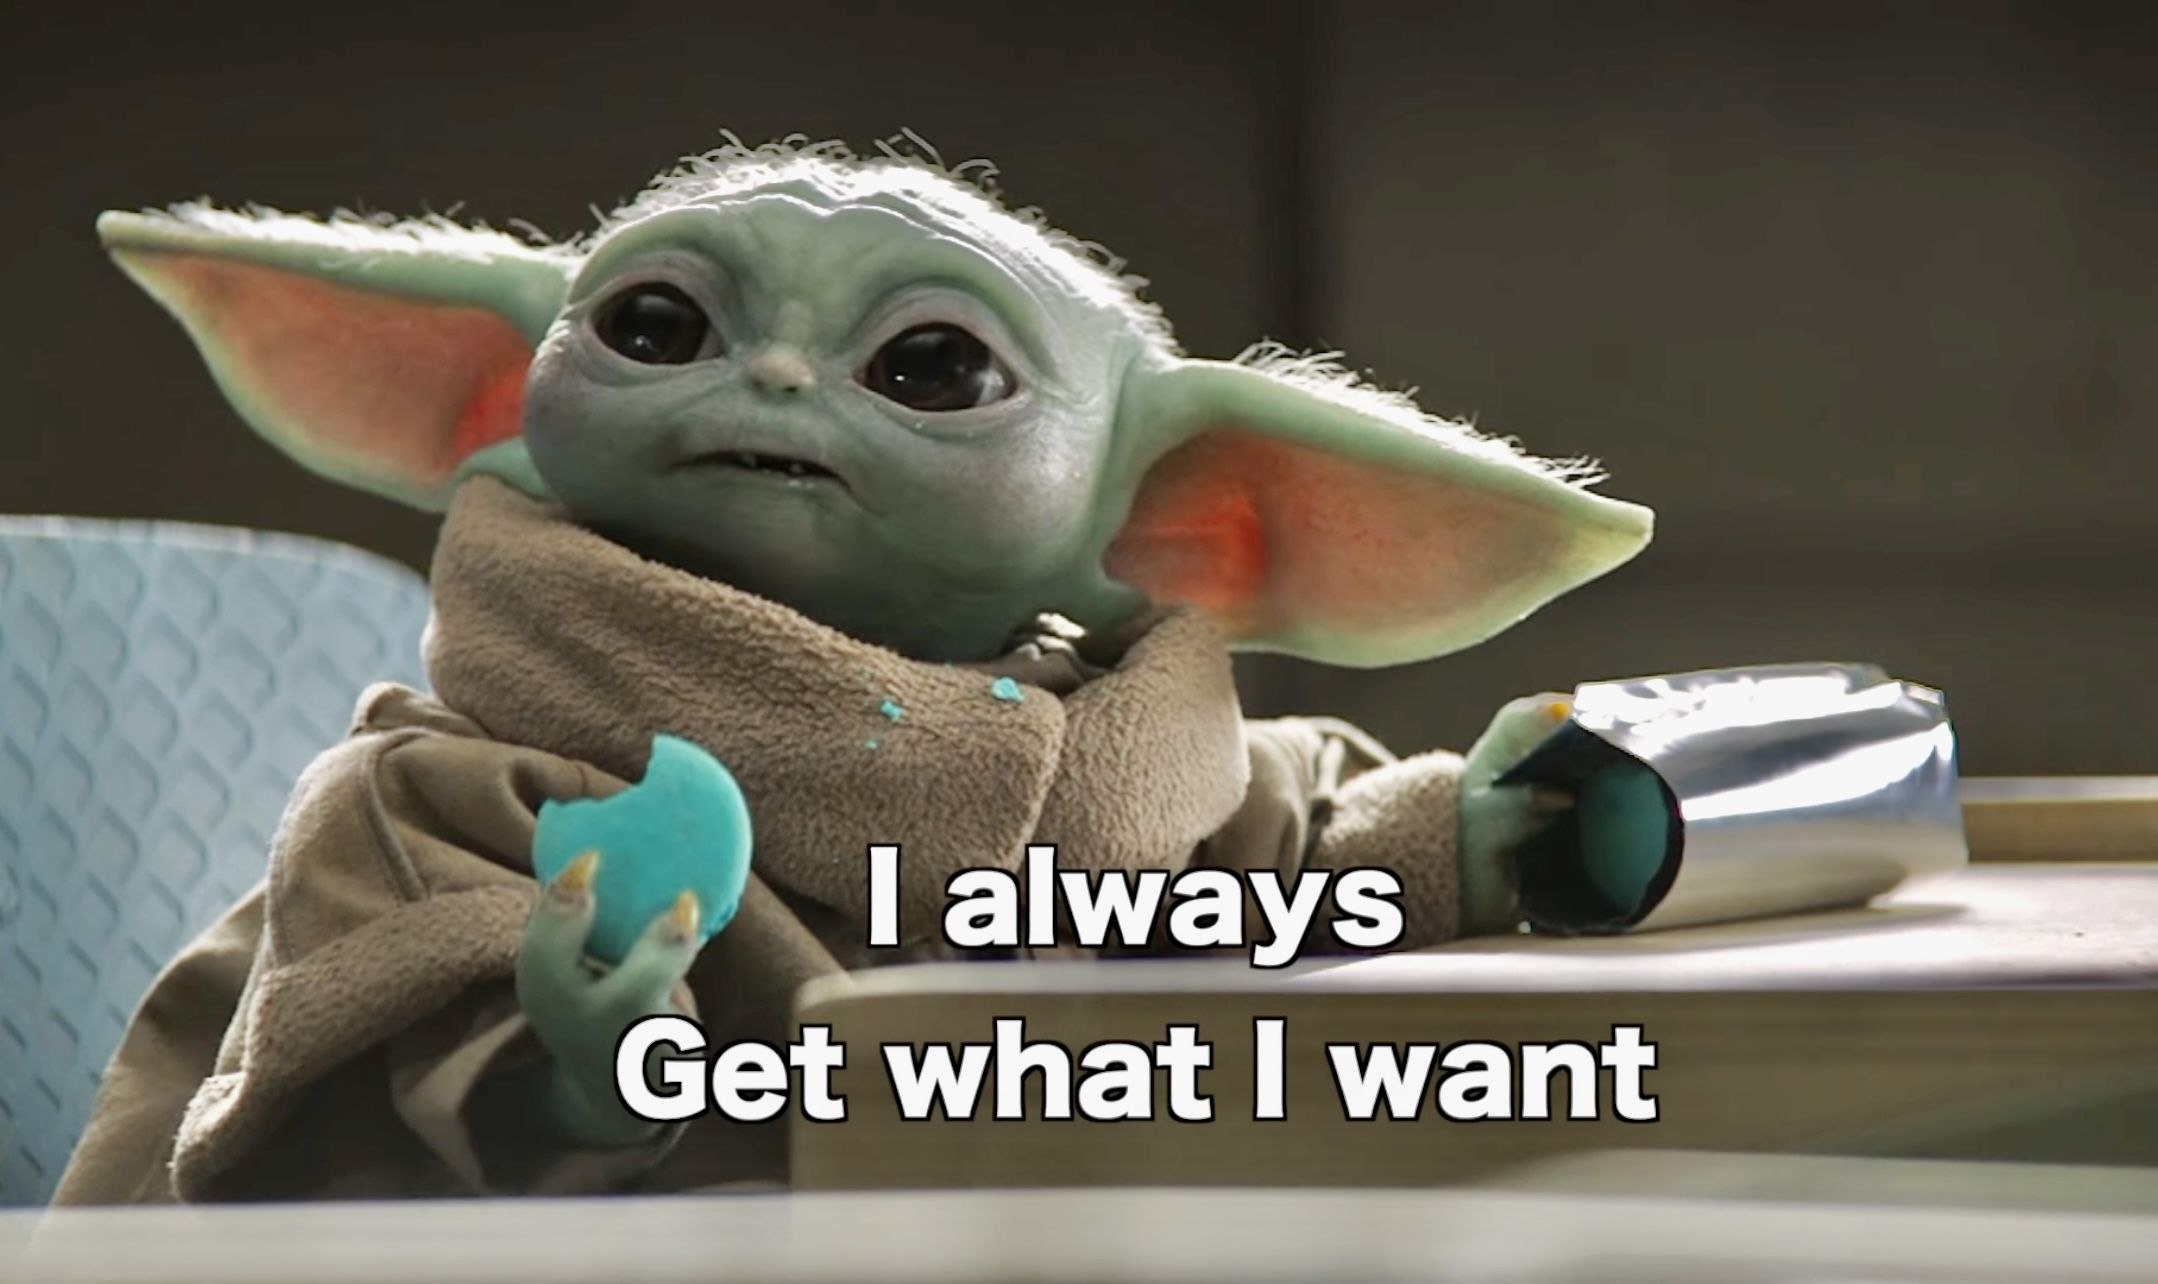 Pin By Lane On Star Wars In 2021 Yoda Images Star Wars Art Funny Laugh